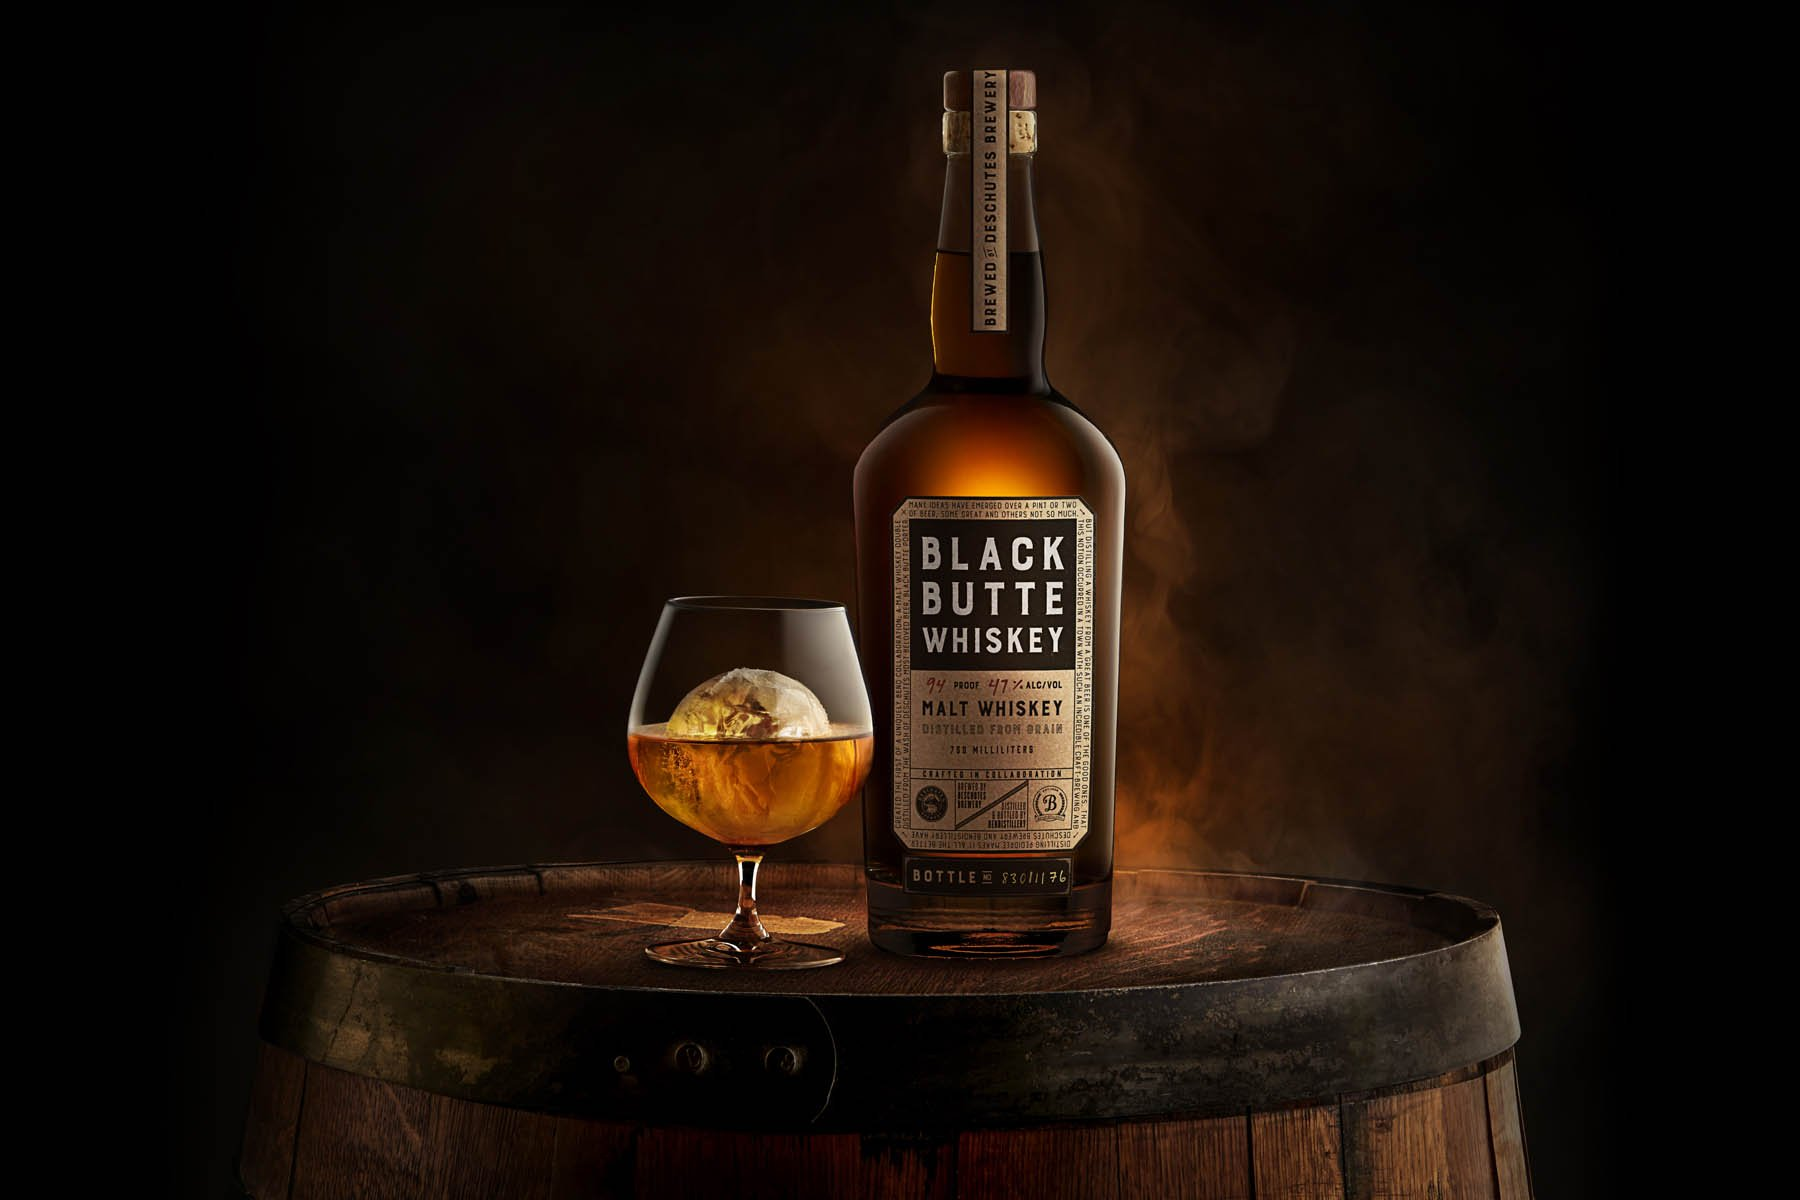 Black Butte Whiskey with a glass